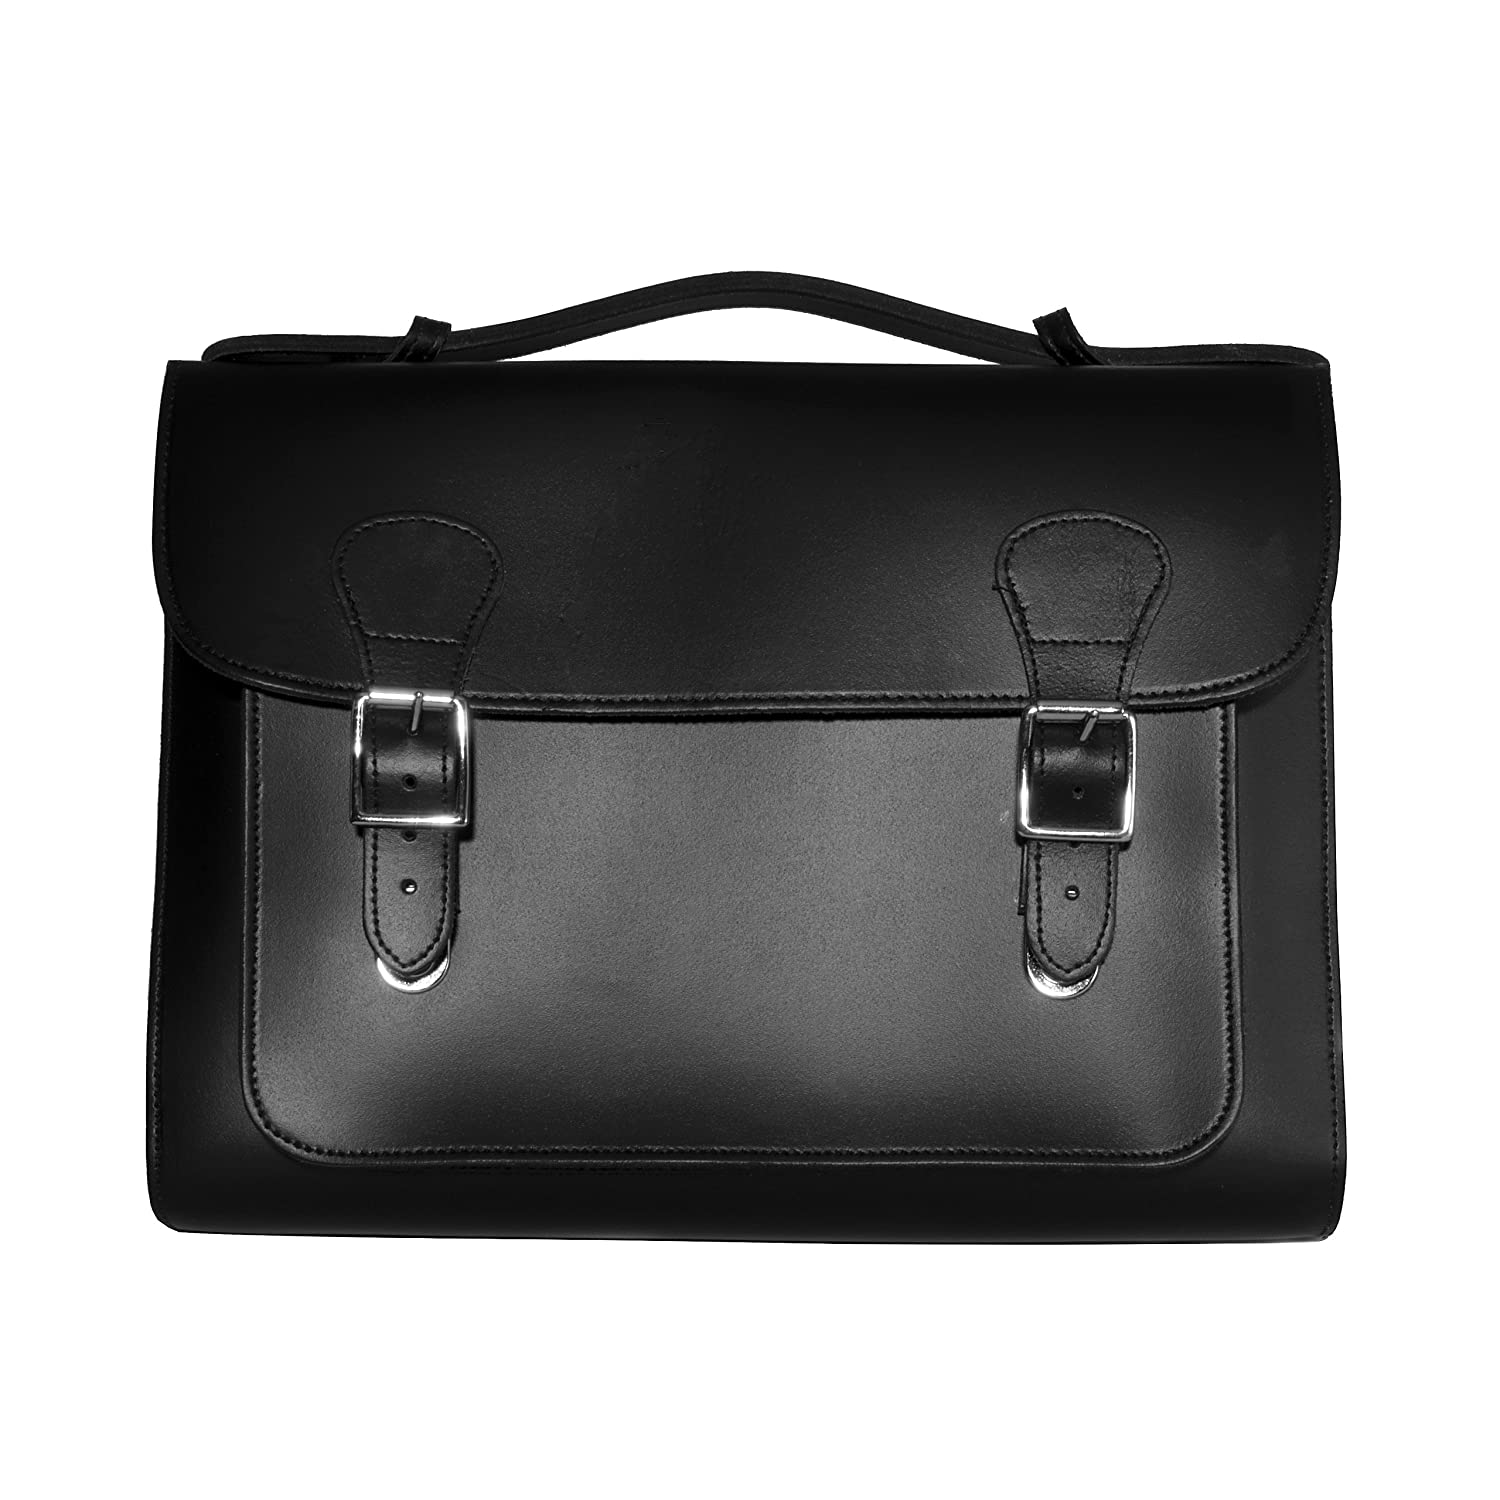 Black Leather Satchel - Made in London, England